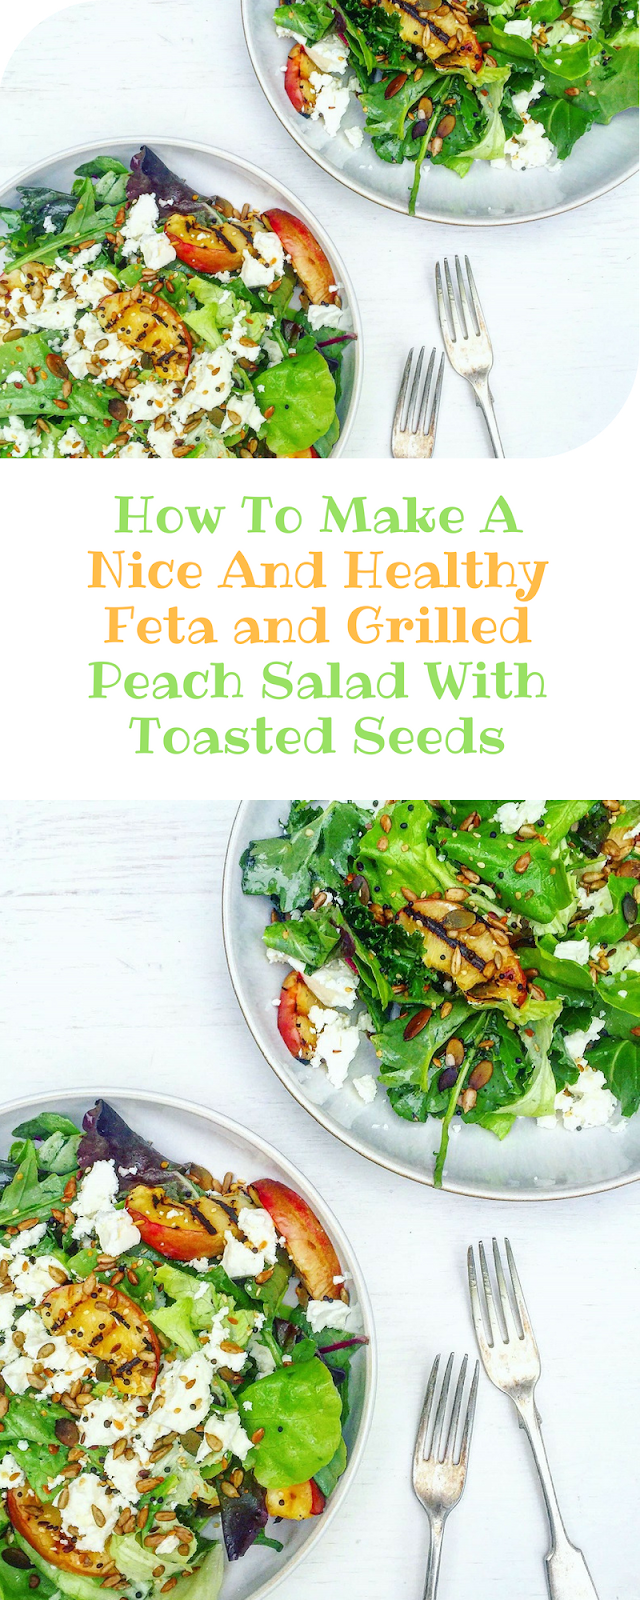 How To Make A Nice And Healthy Feta and Grilled Peach Salad With Toasted Seeds